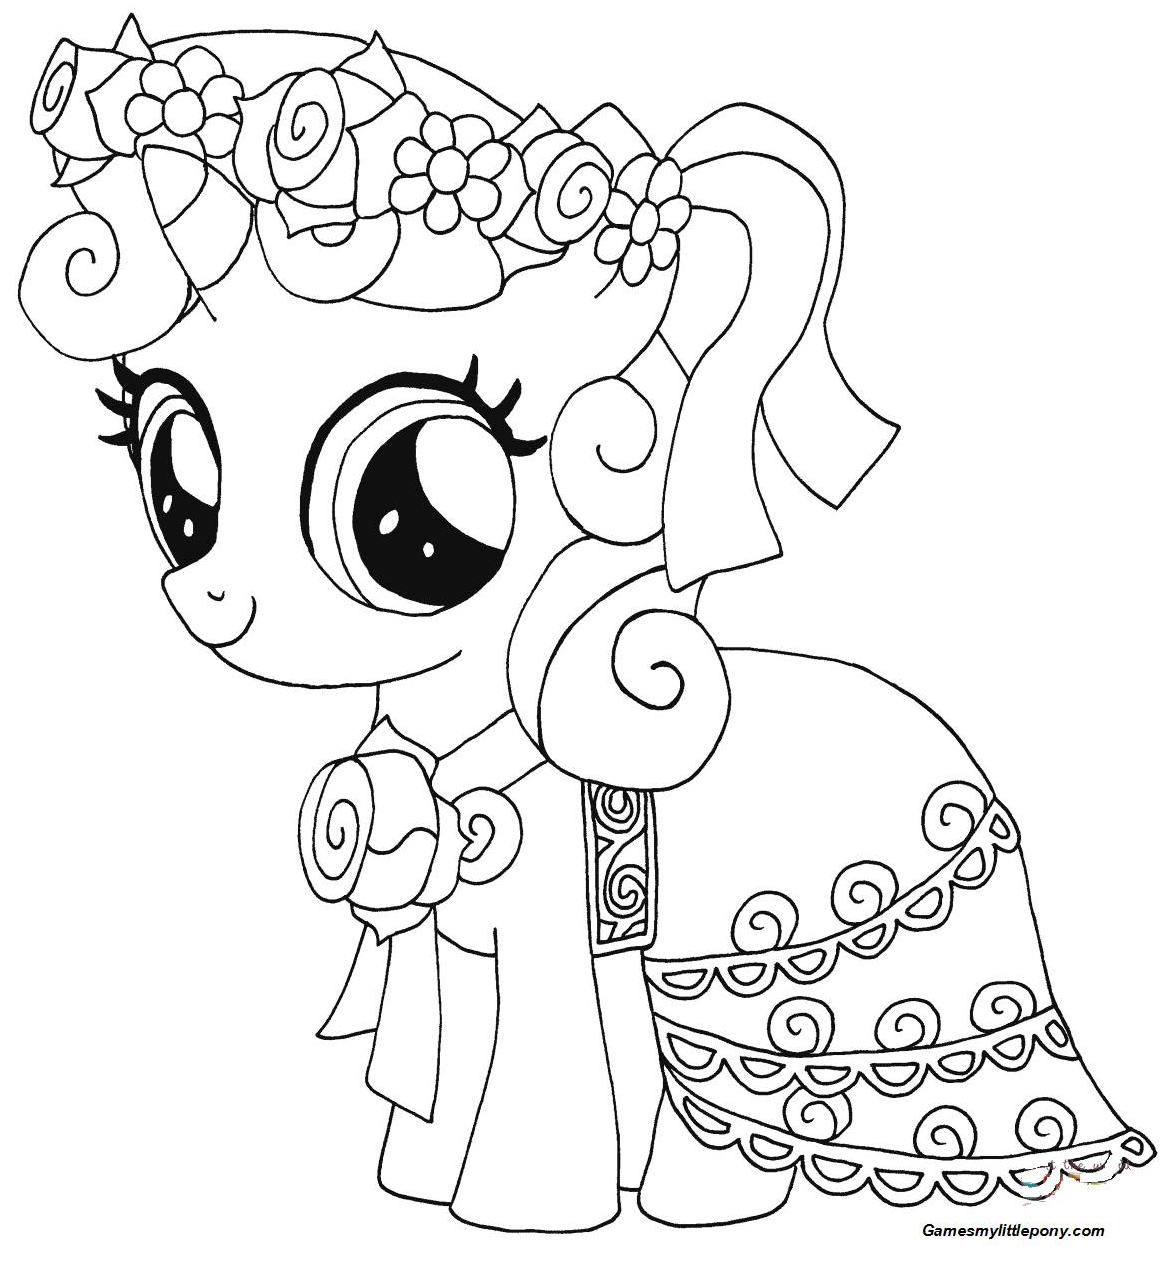 My Little Pony Sweetie Belle from My Little Pony Coloring Page